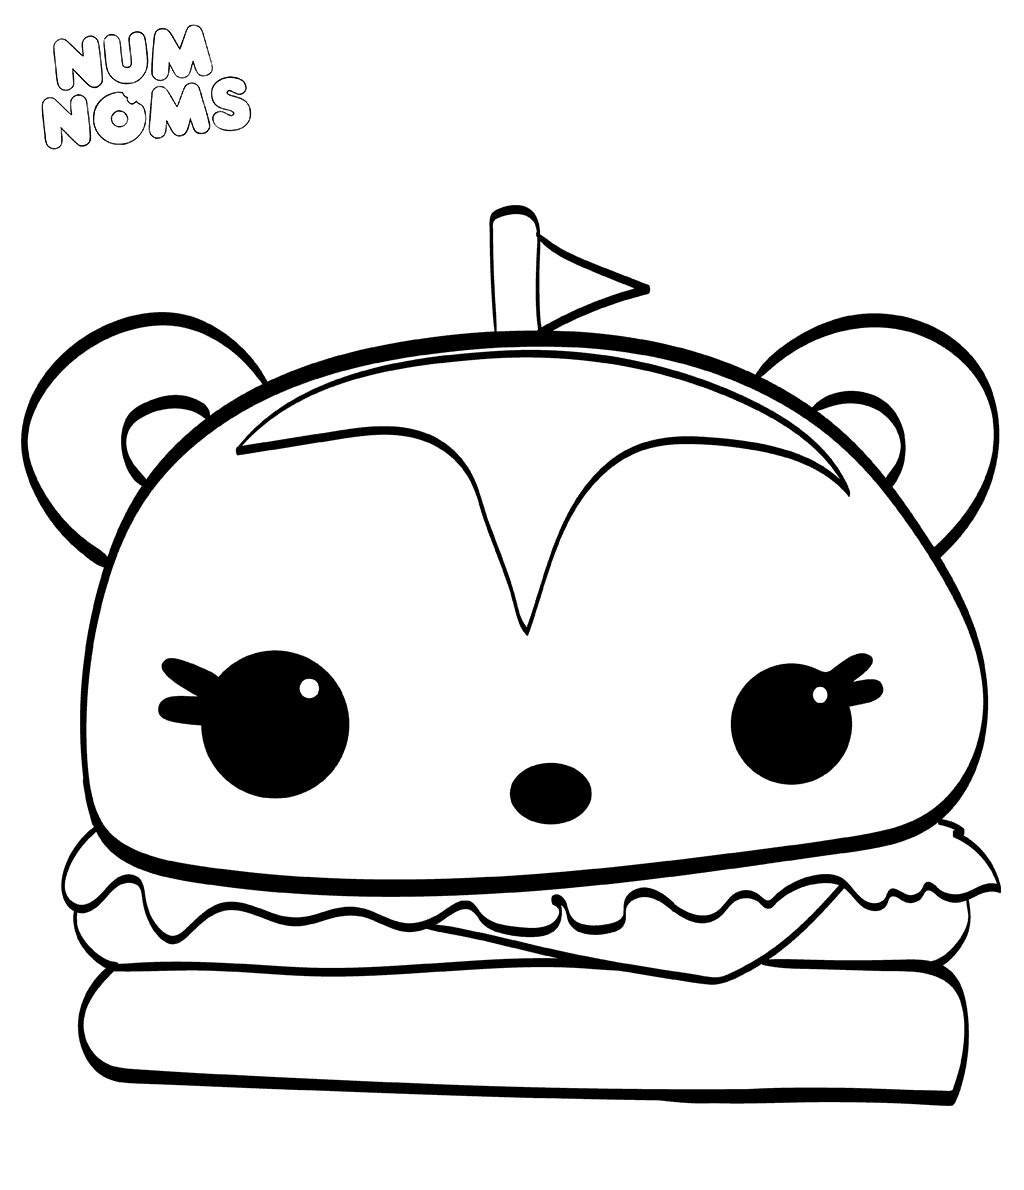 Hammy Burger From Num Noms Coloring Sheets Cartoon Coloring Pages Coloring Pages Cute Coloring Pages